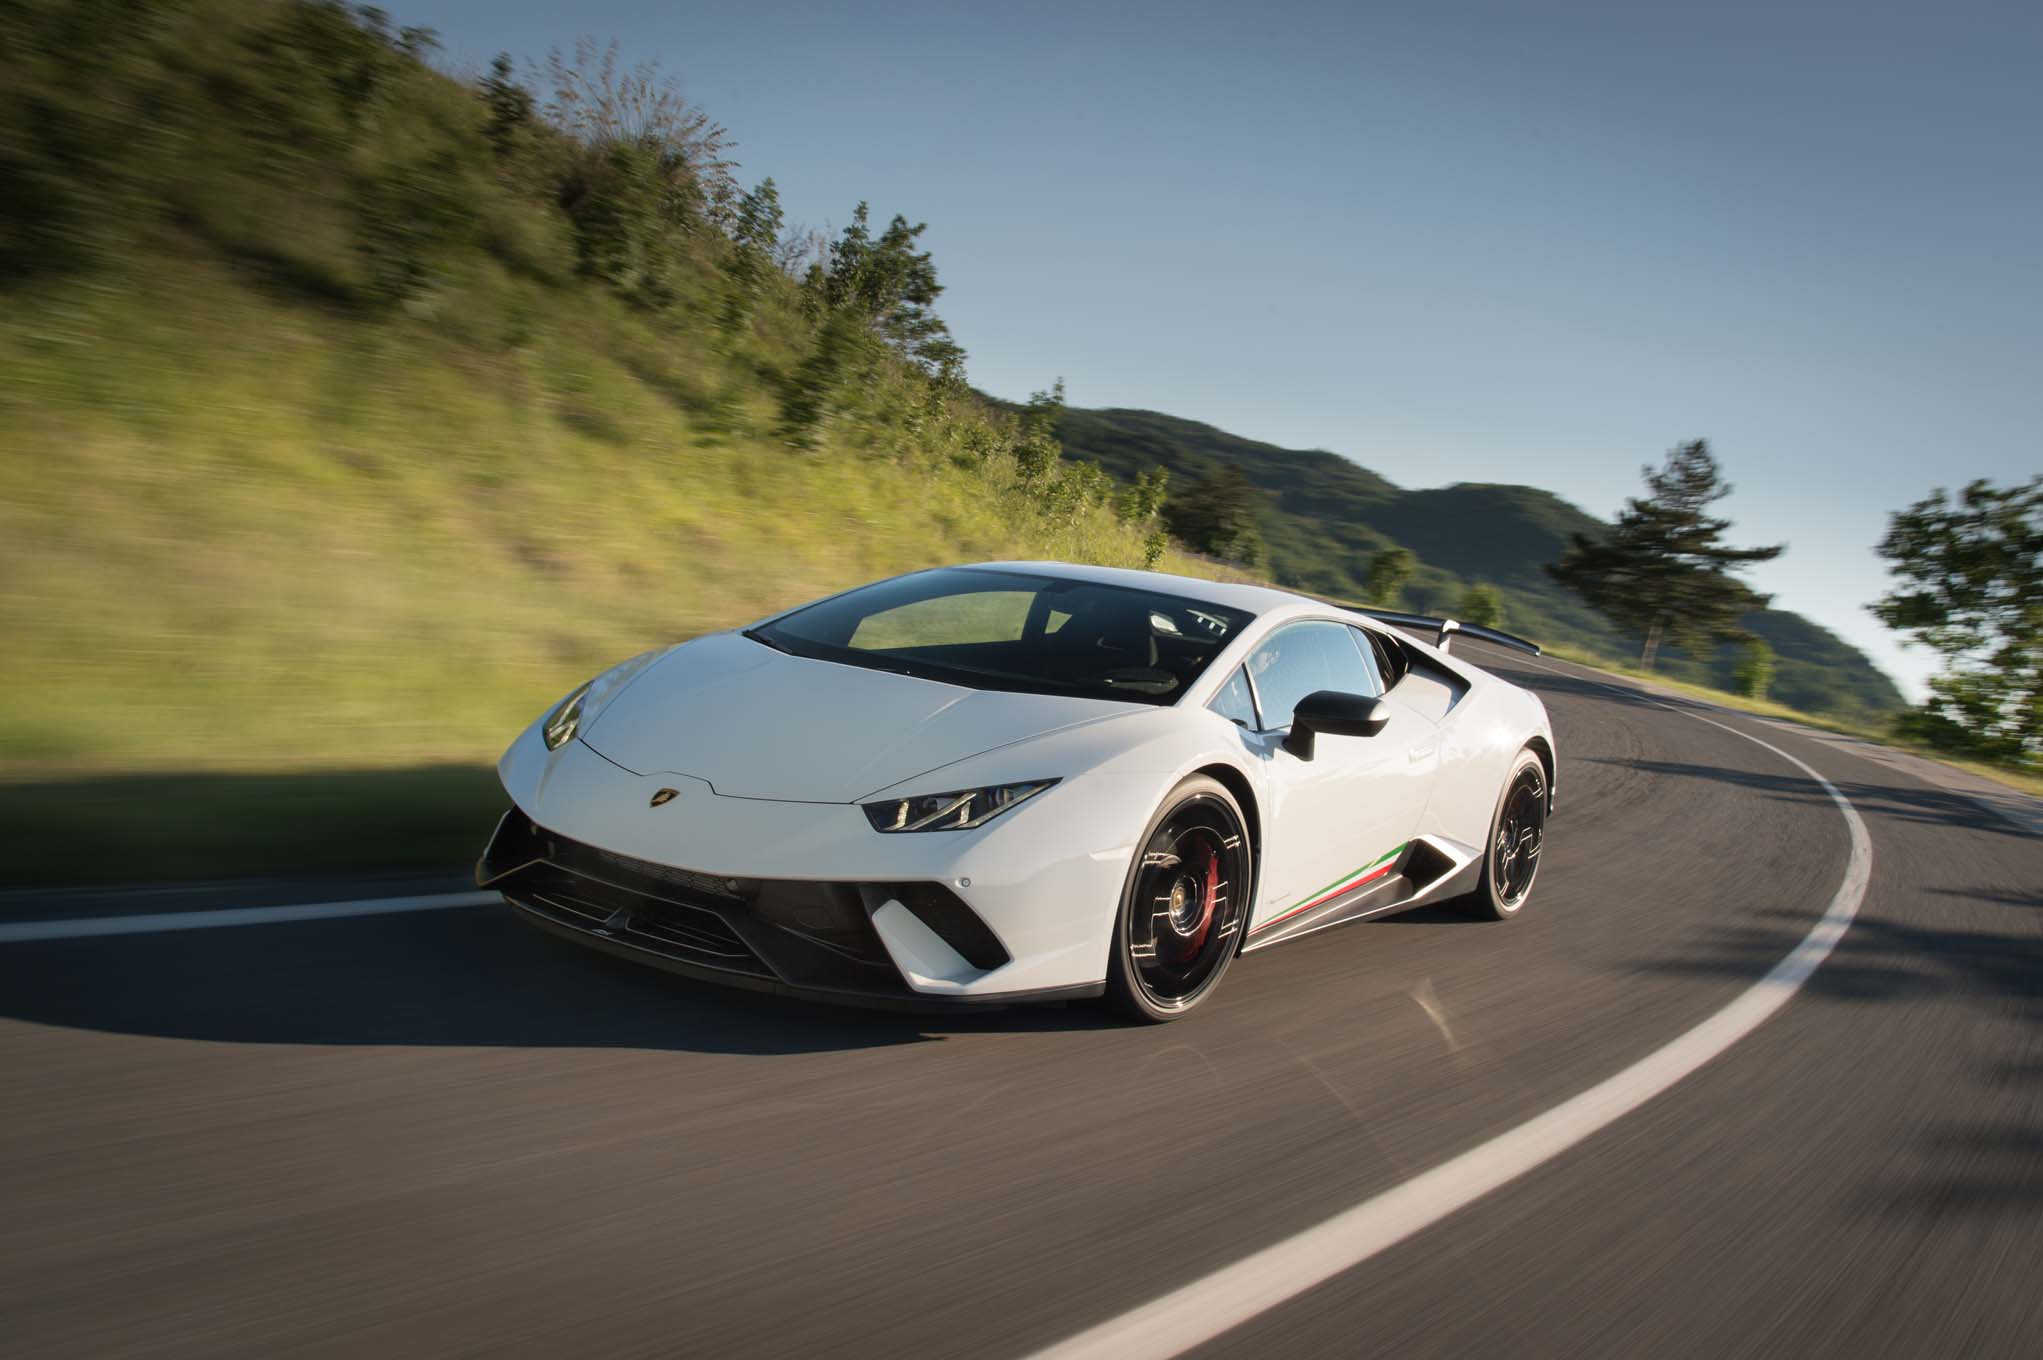 lamborghini performante 2018 hp with First Drive 2018 Lamborghini Huracan Performante on Official Mansory Torofeo Lamborghini Huracan 2 additionally Bugatti Chiron By Design Whats New And Why additionally Auto Piu Costose Al Mondo Classifica moreover 2017 Range Topping Lamborghini Aventador S Arrives 730bhp moreover Lamborghini Urus Not Even Revealed Gets Tuning Package.